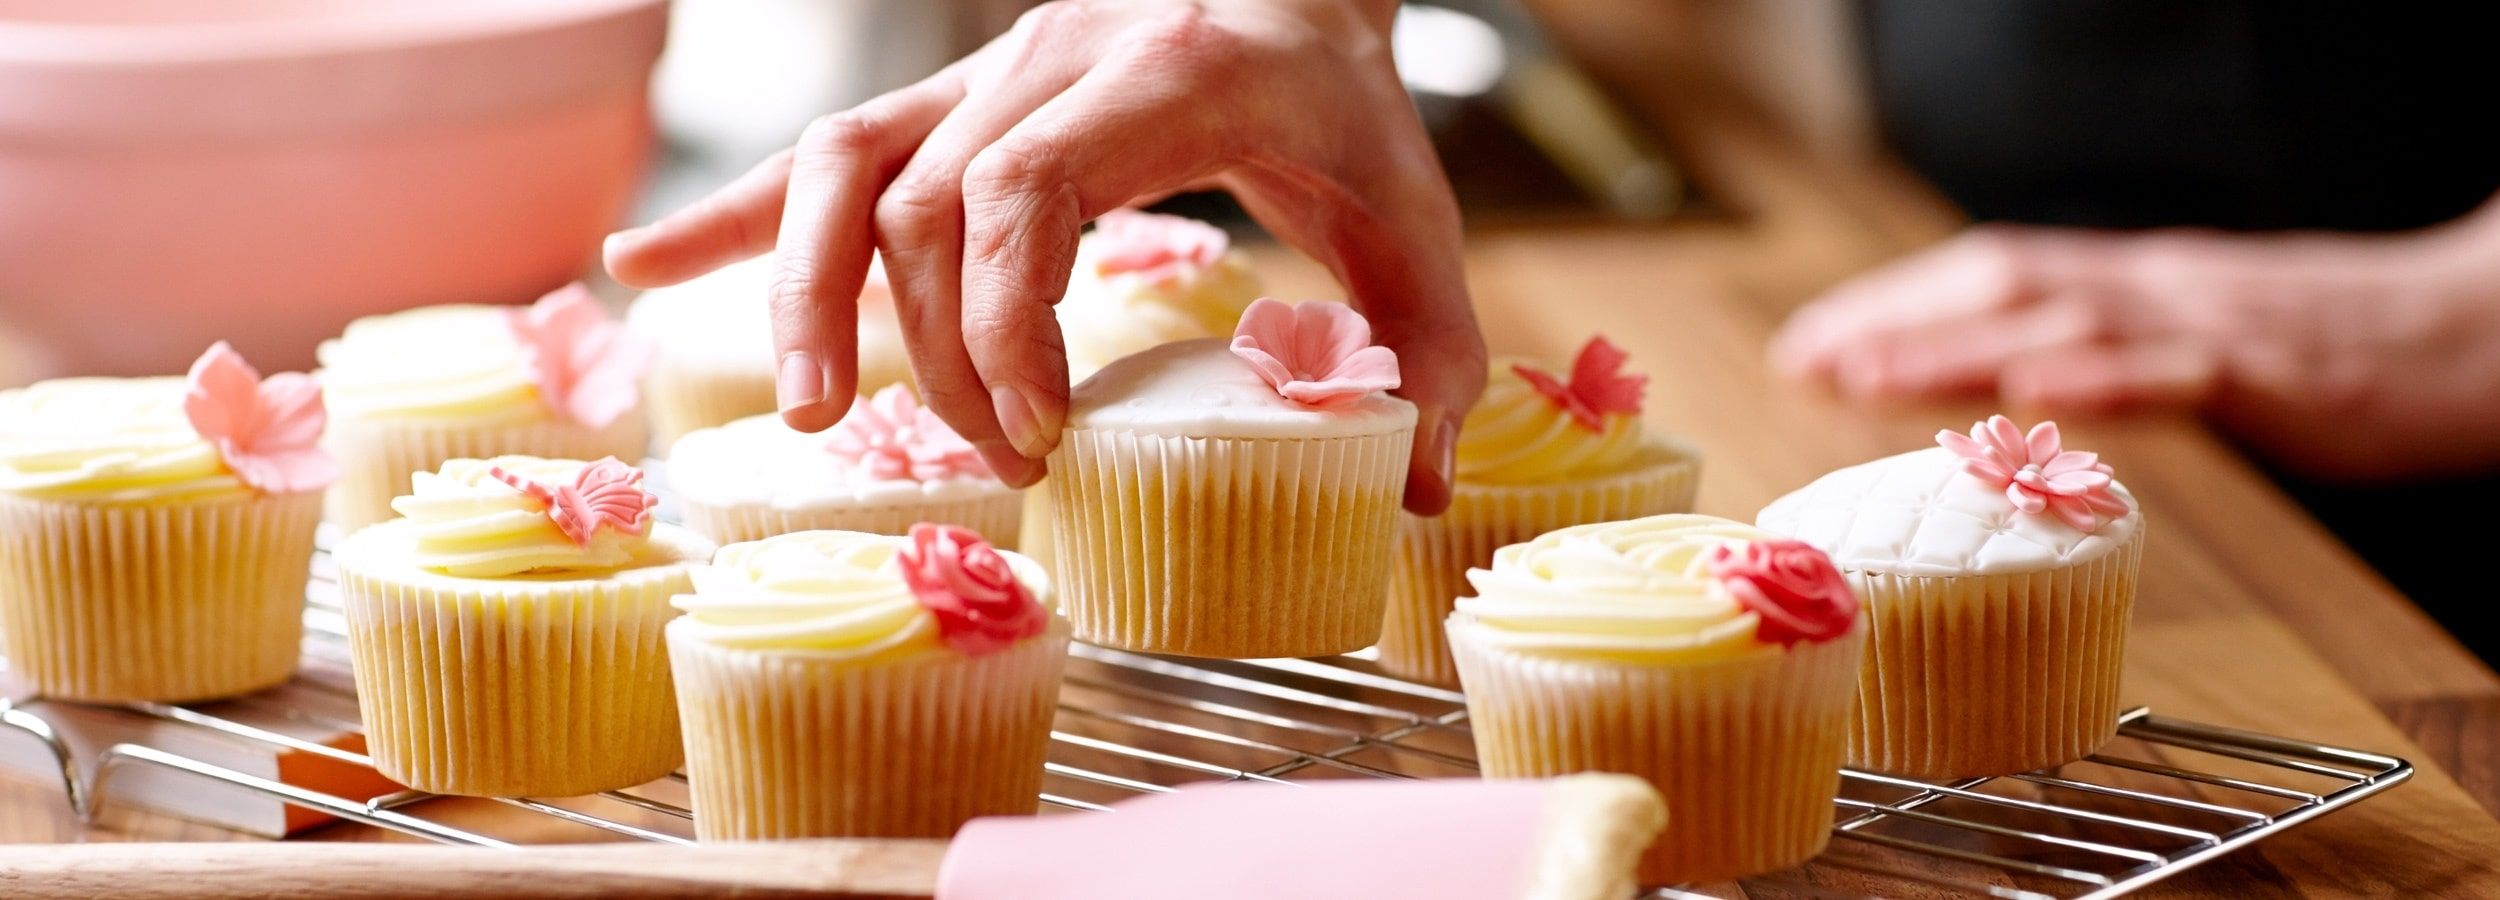 Cupcakes can contain starches, sugars and naturally occurring sweeteners